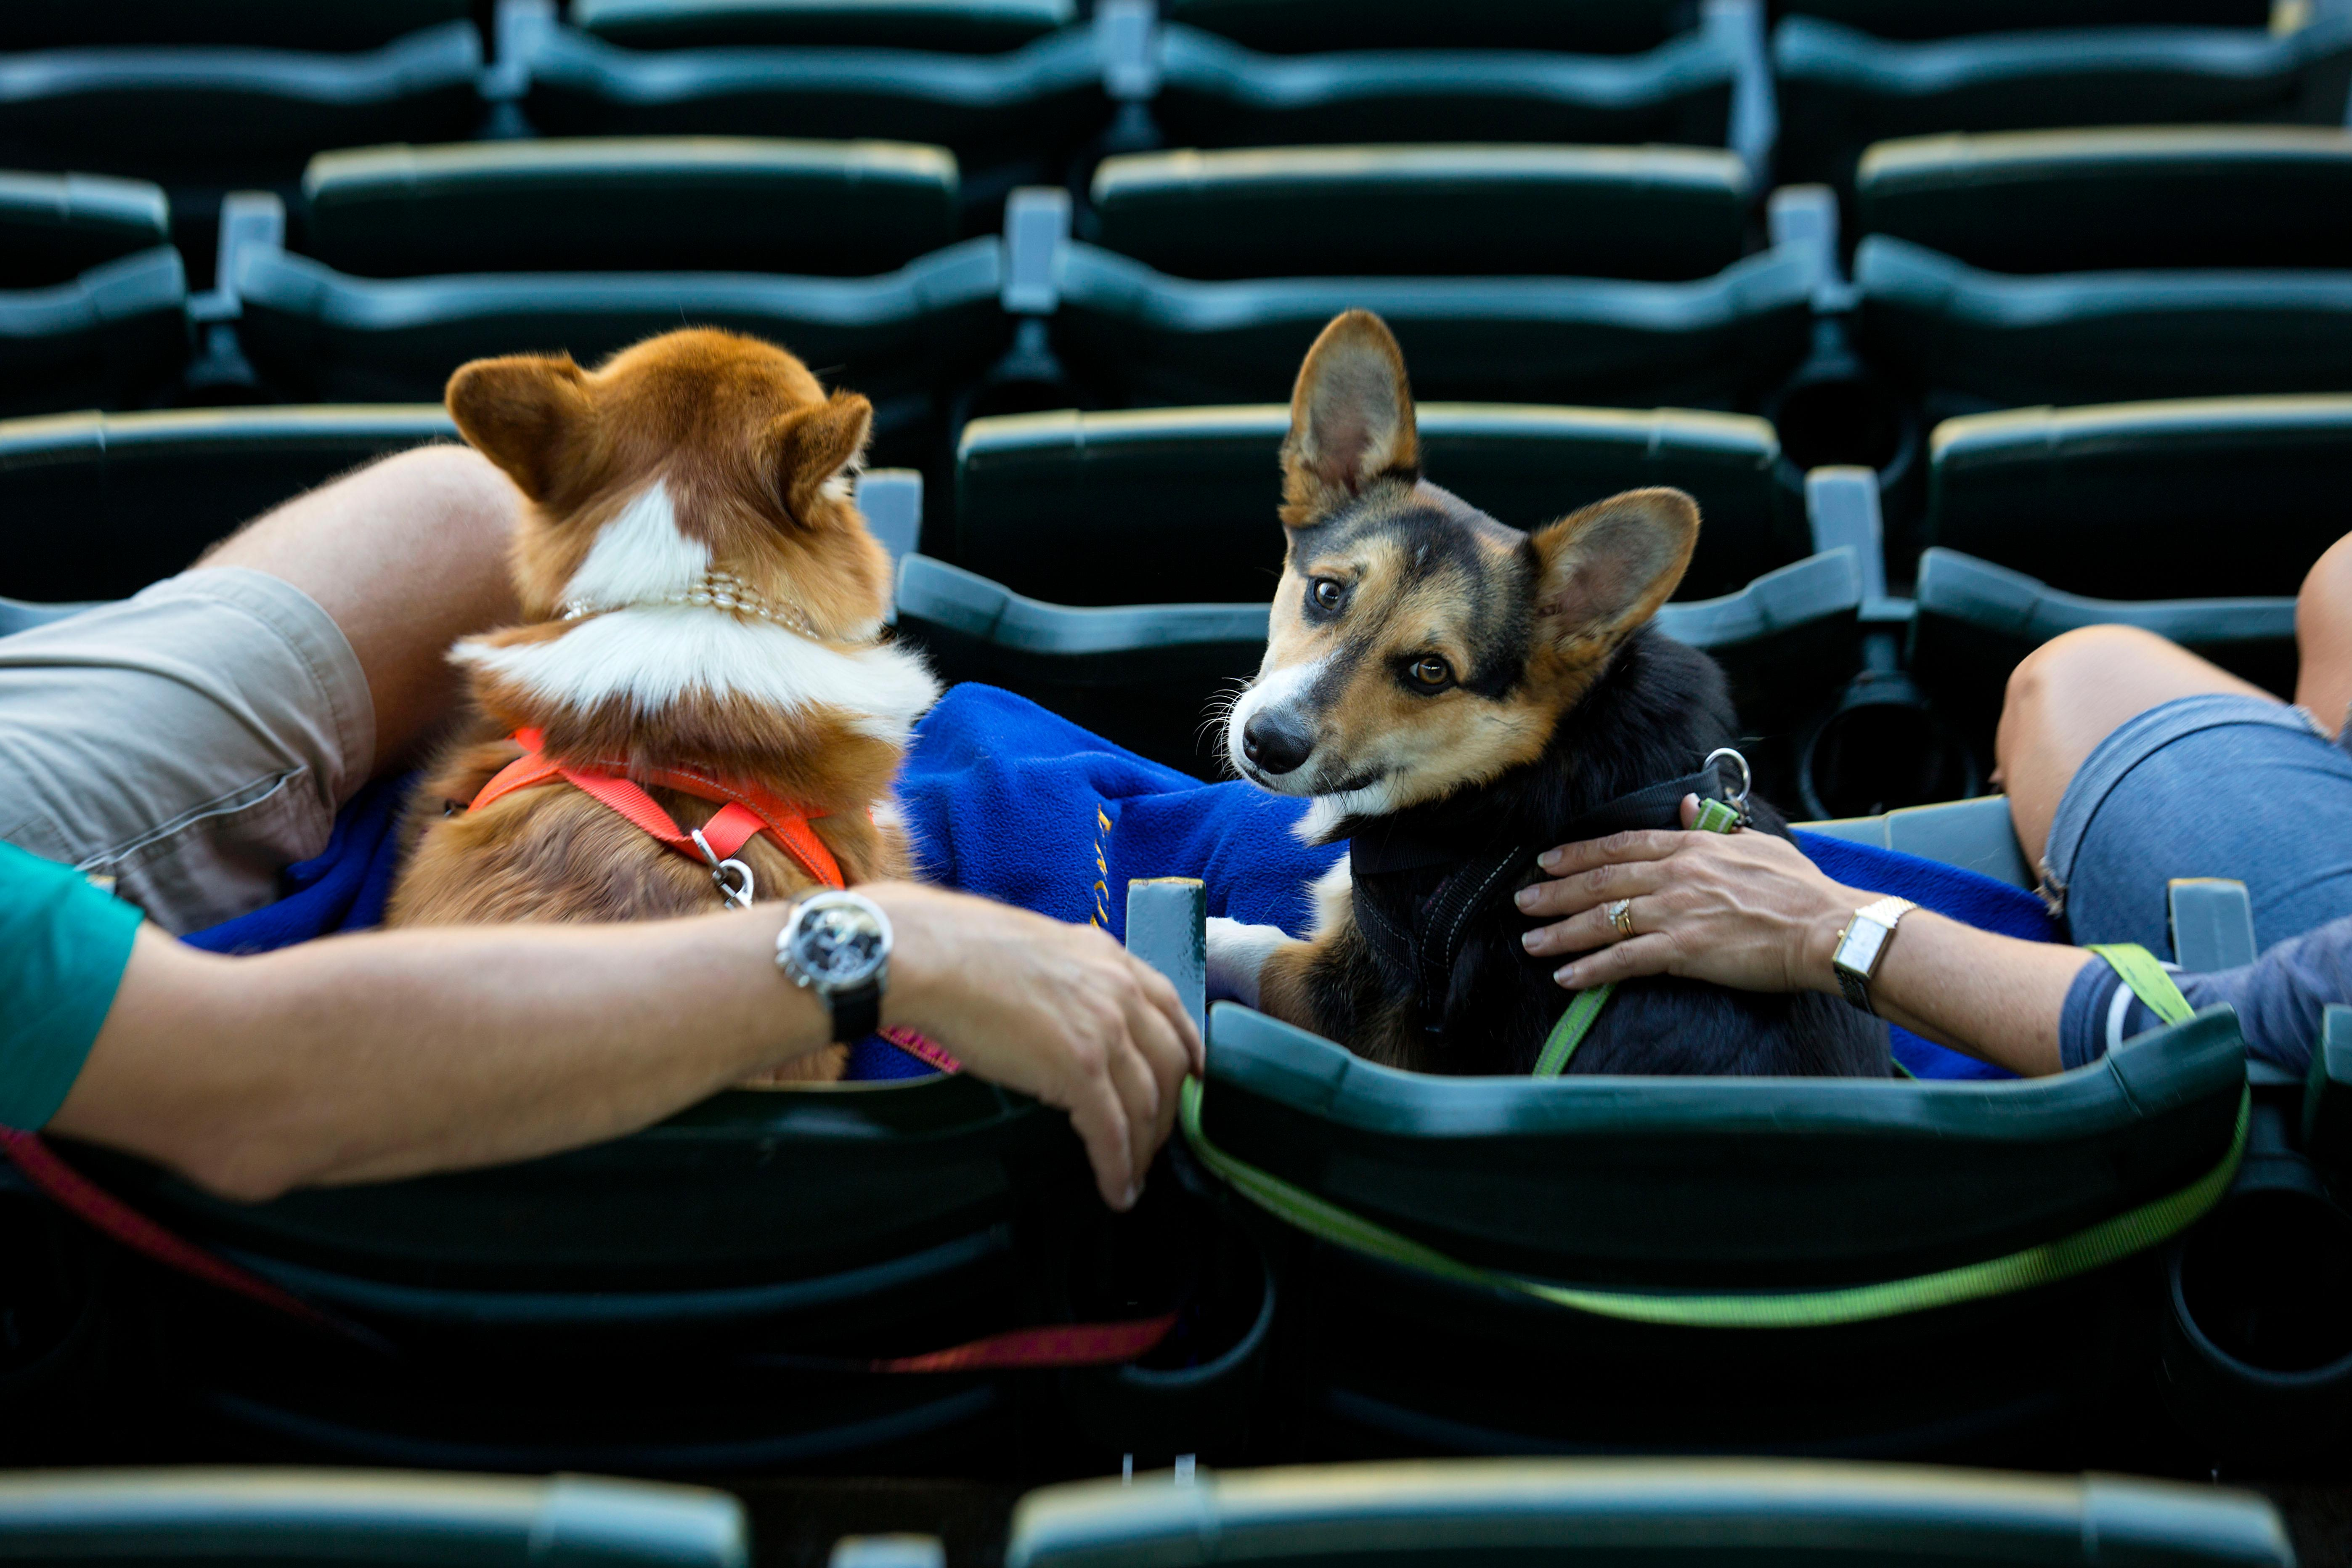 It was another night for Bark at the Park! Mariners fans were allowed to bring their dogs to the game to enjoy the sun, some Mariners baseball, and man's best friend. The next Bark at the Park game will be September 5, against the Houston Astros. (Sy Bean / Seattle Refined)